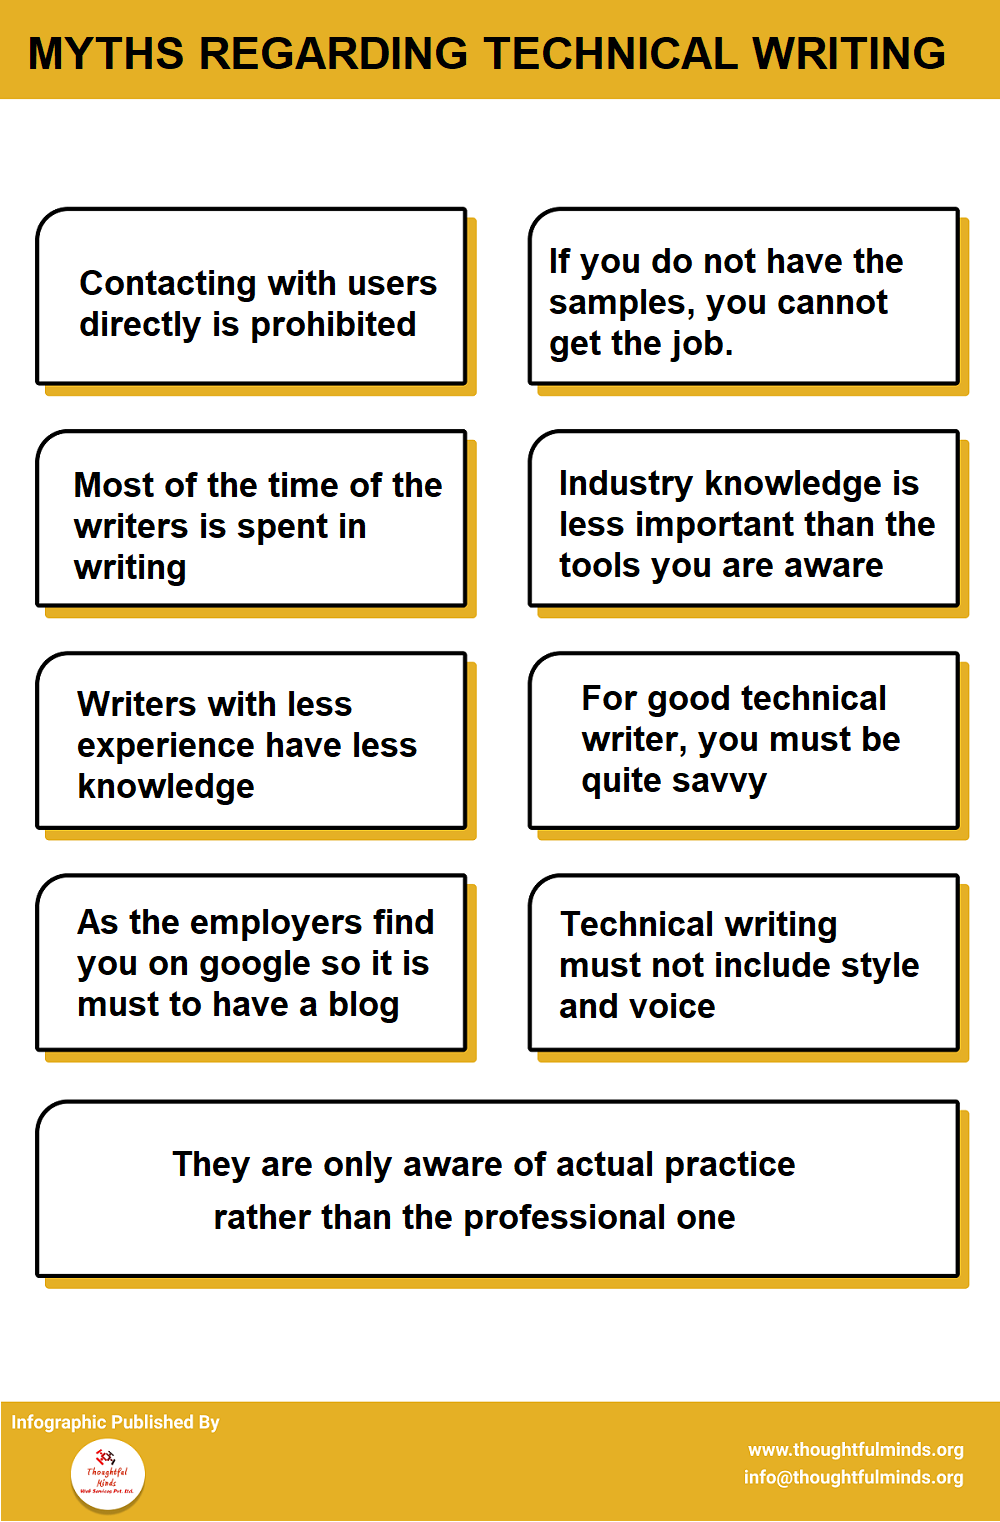 Infographic On Myths Regarding Technical Writing - ThoughtfulMinds